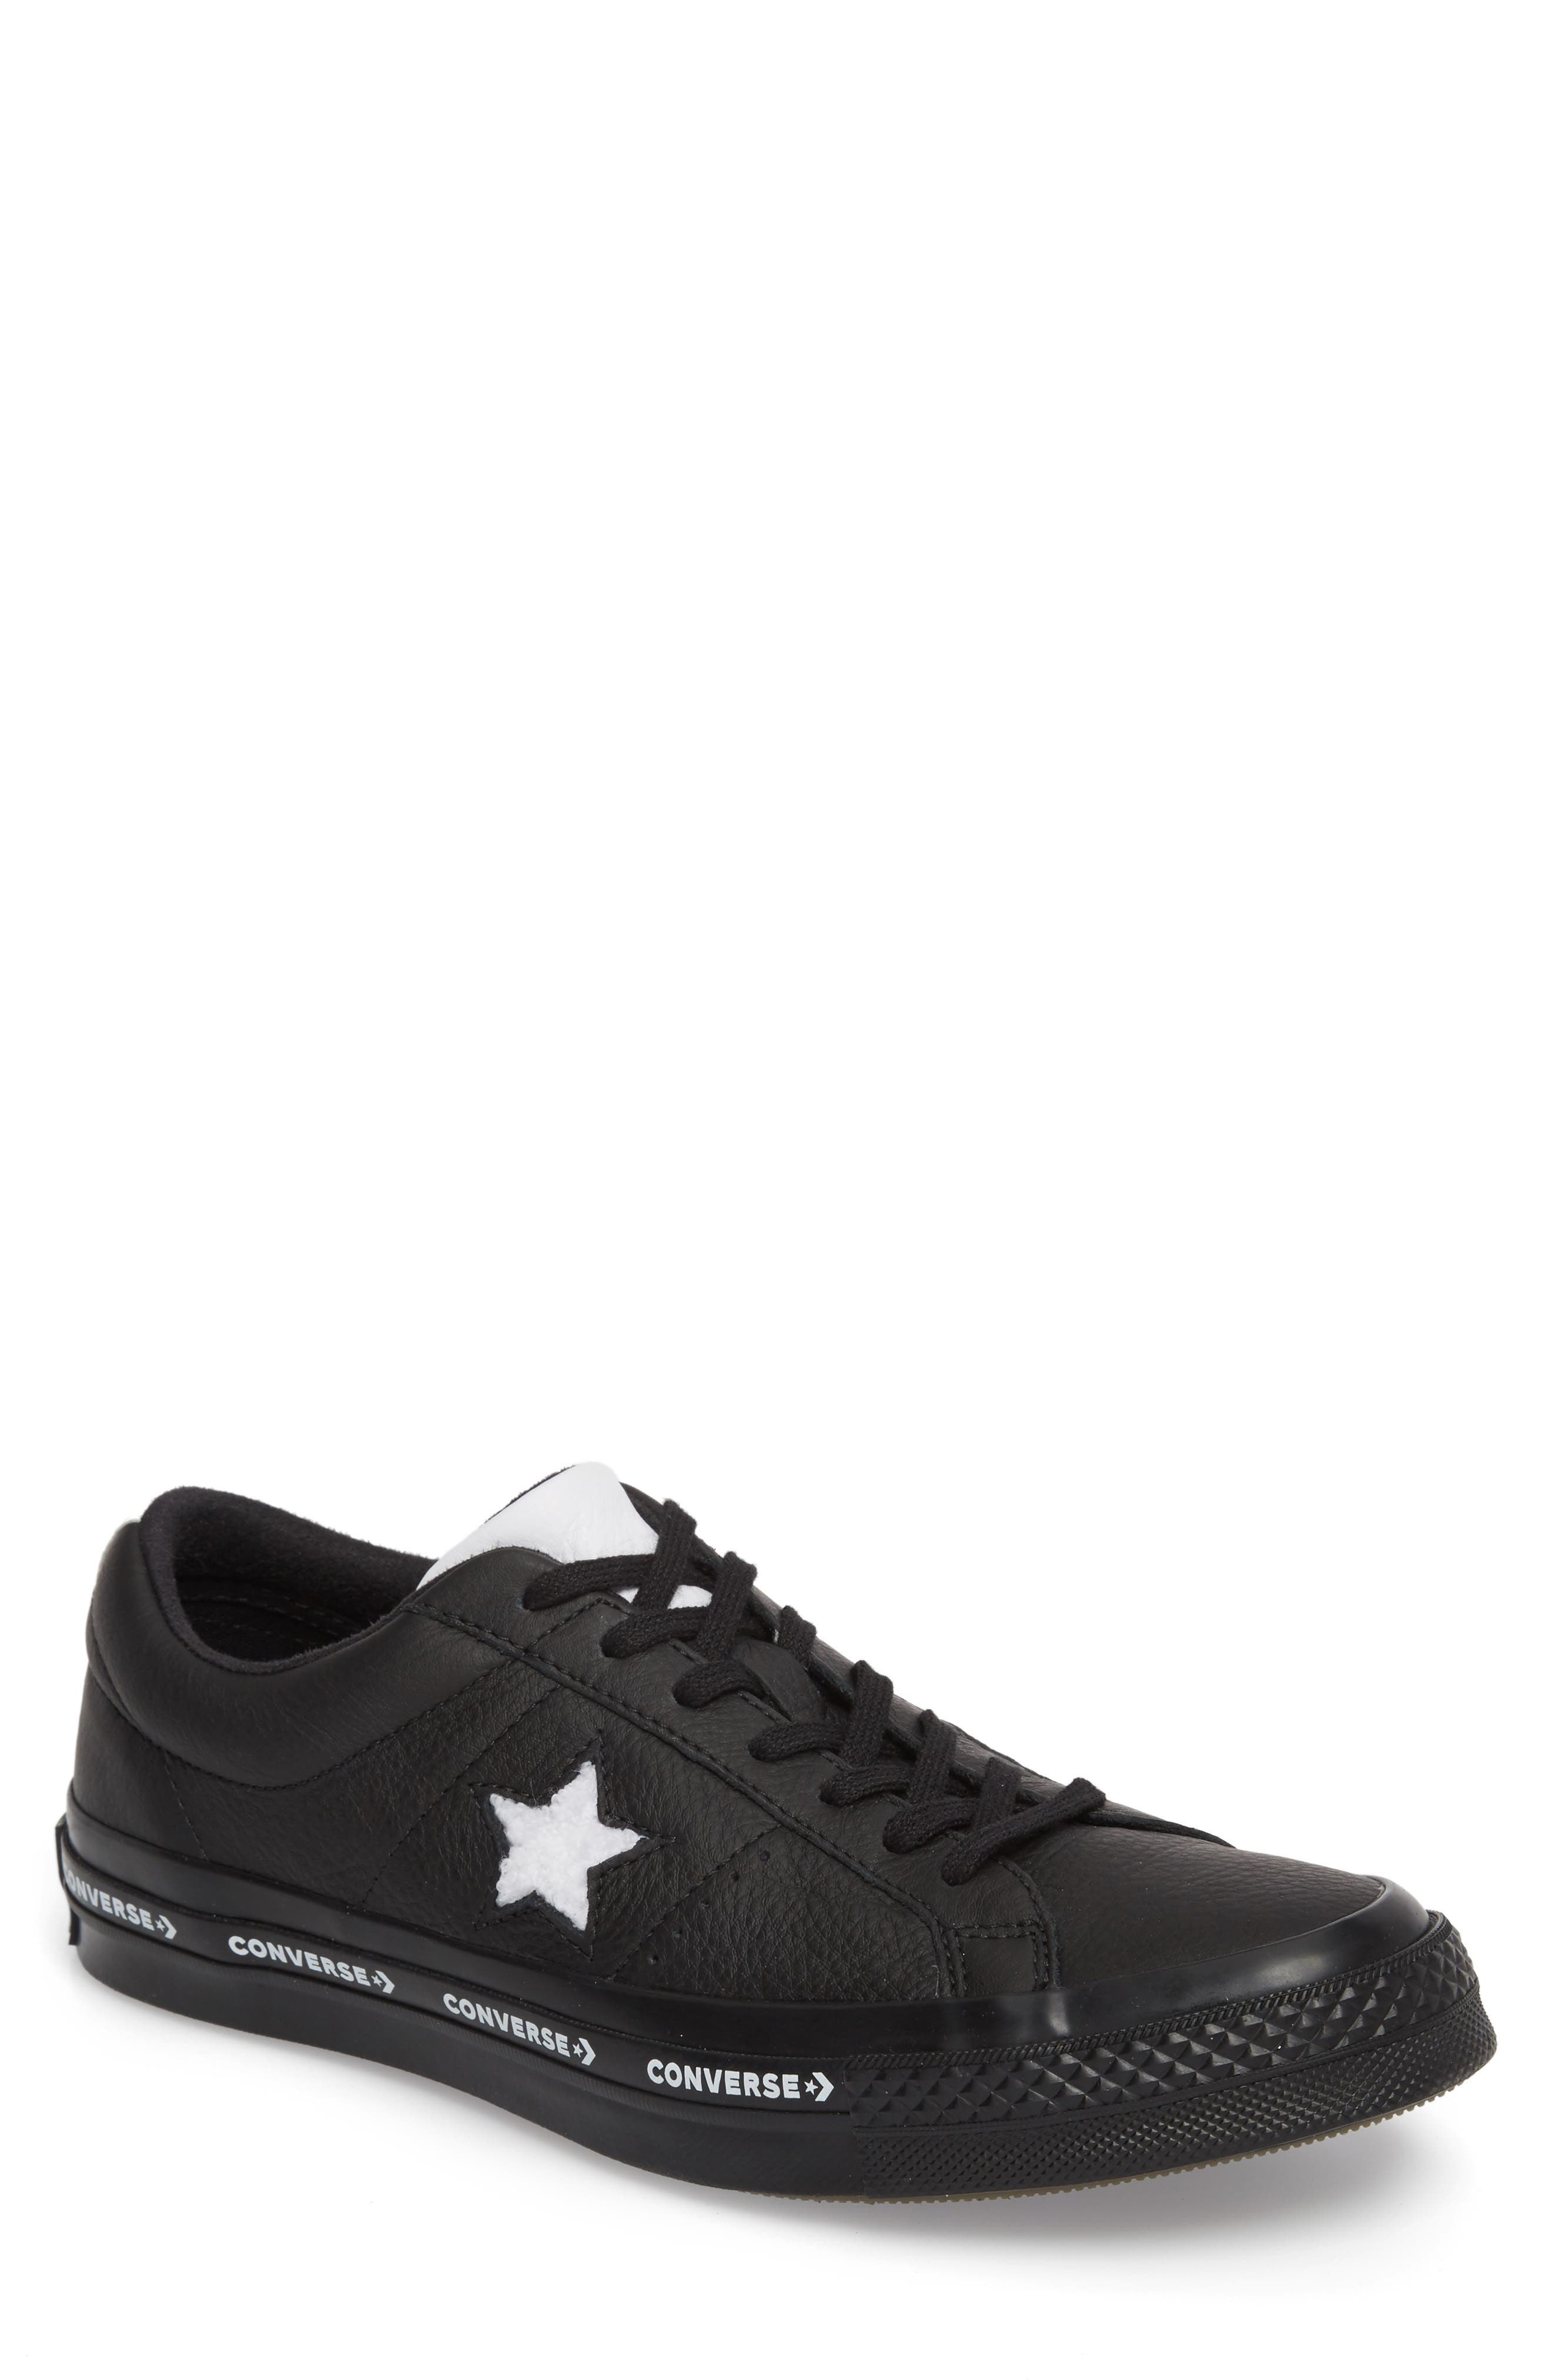 Chuck Taylor<sup>®</sup> One Star Pinstripe Sneaker,                         Main,                         color, Black Leather